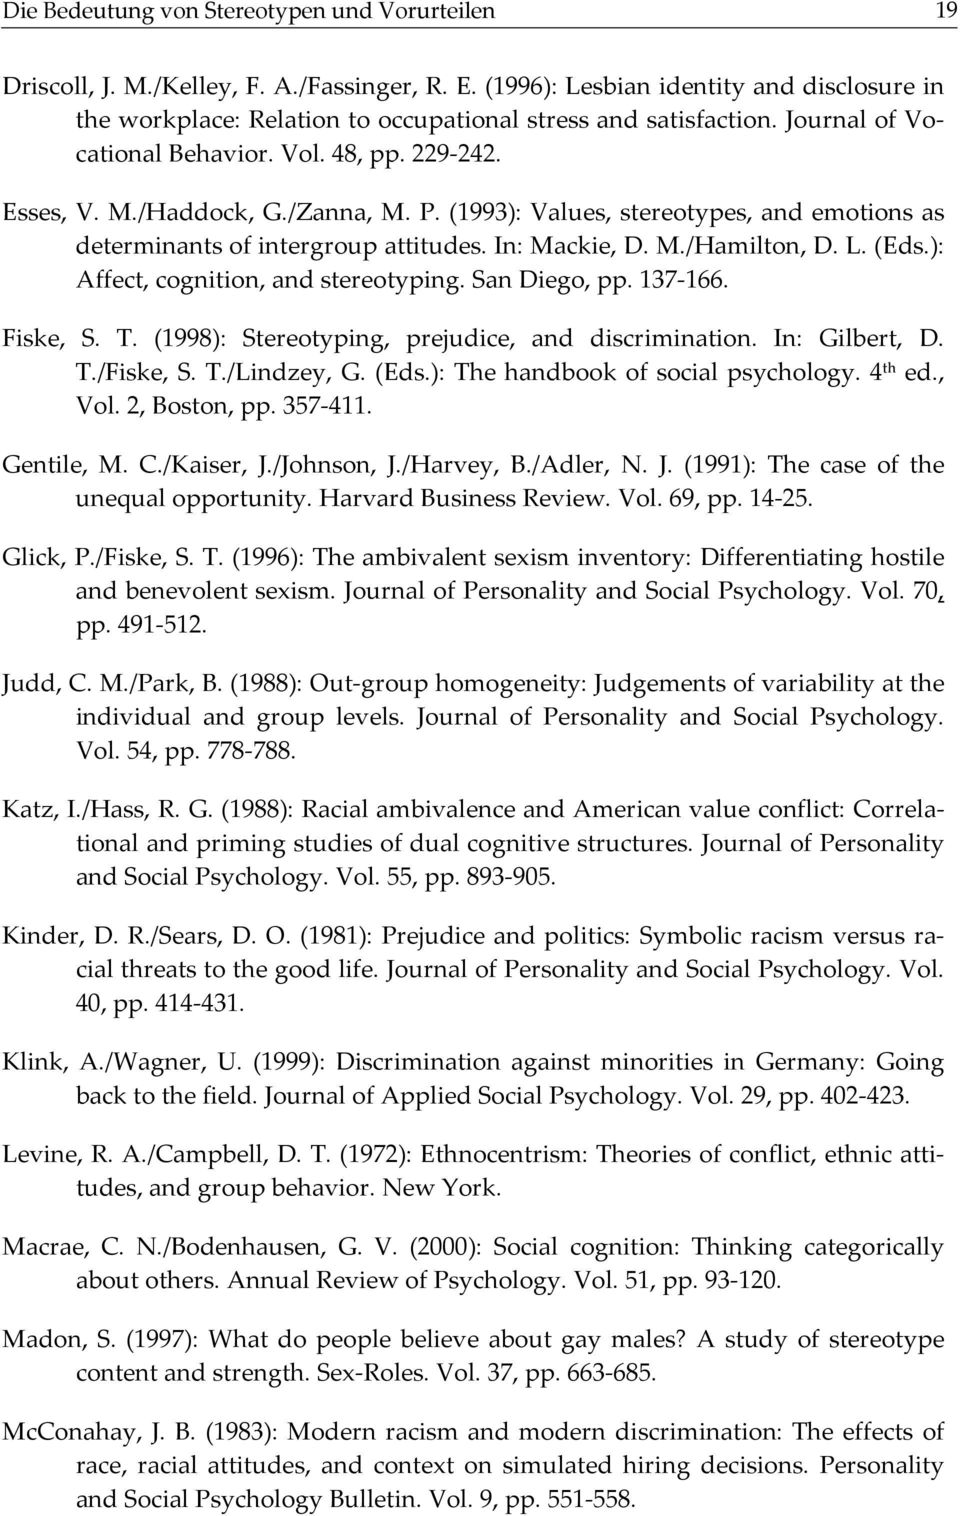 (1993): Values, stereotypes, and emotions as determinants of intergroup attitudes. In: Mackie, D. M./Hamilton, D. L. (Eds.): Affect, cognition, and stereotyping. San Diego, pp. 137-166. Fiske, S. T.